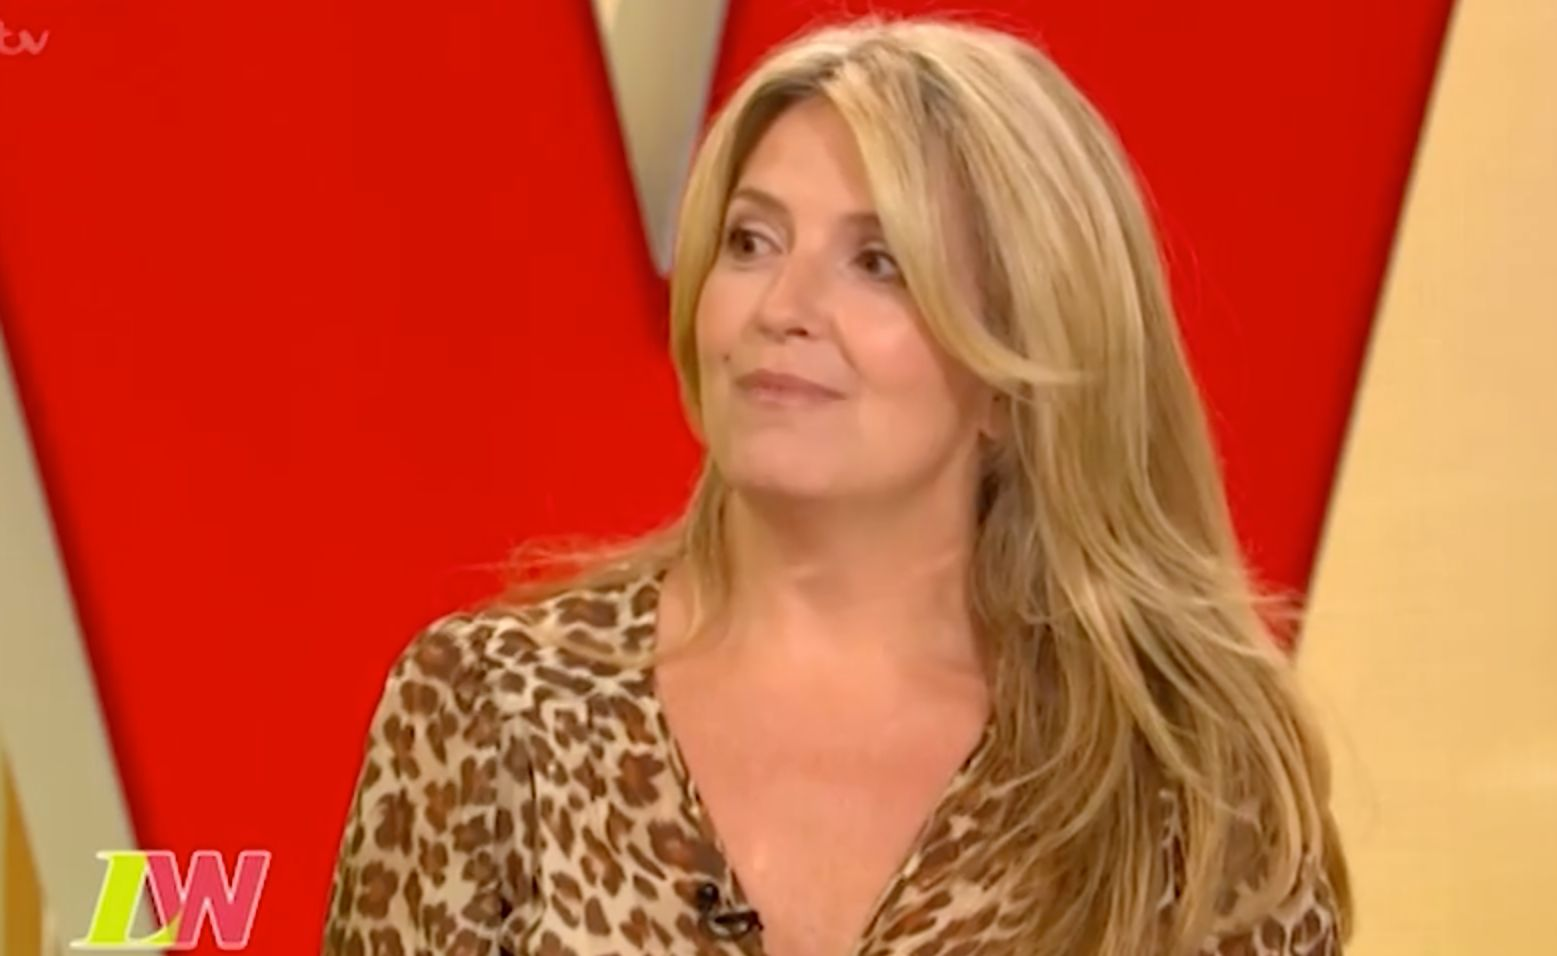 Loose Women's Penny Lancaster Apologises After Mistakenly Saying Burt Bacharach Was